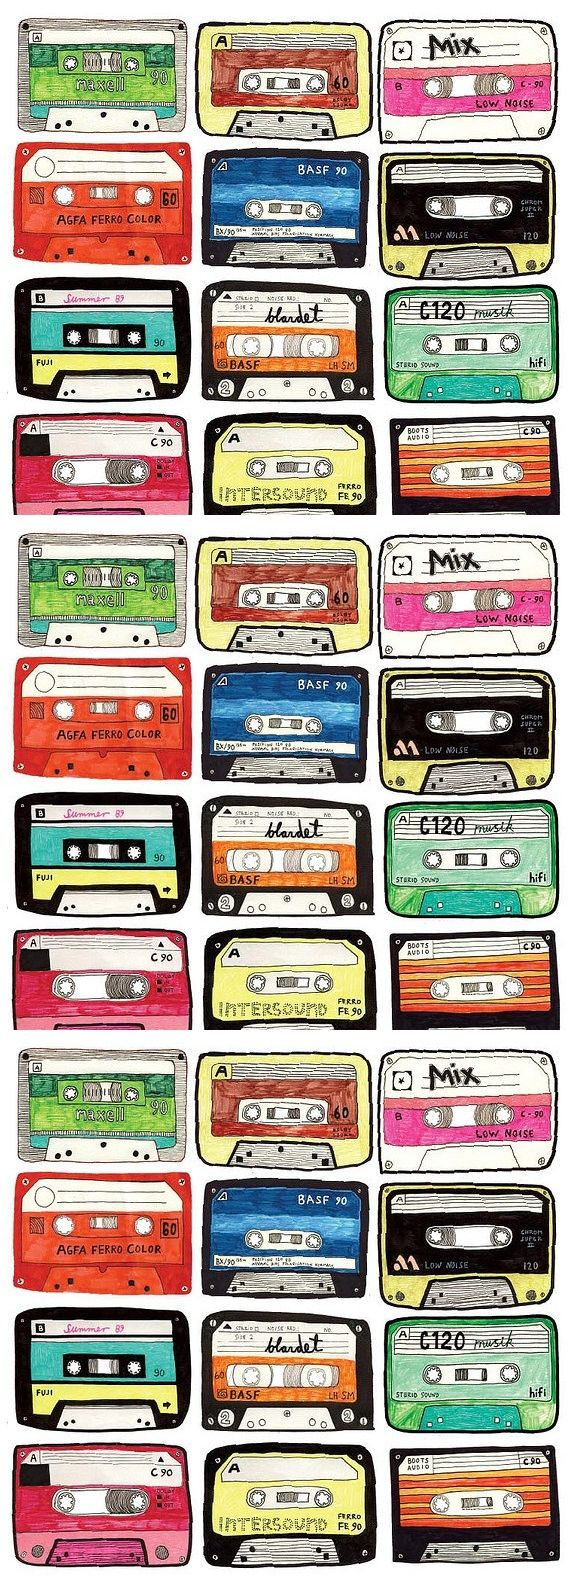 leann gorman .:. remembering your mix tapes